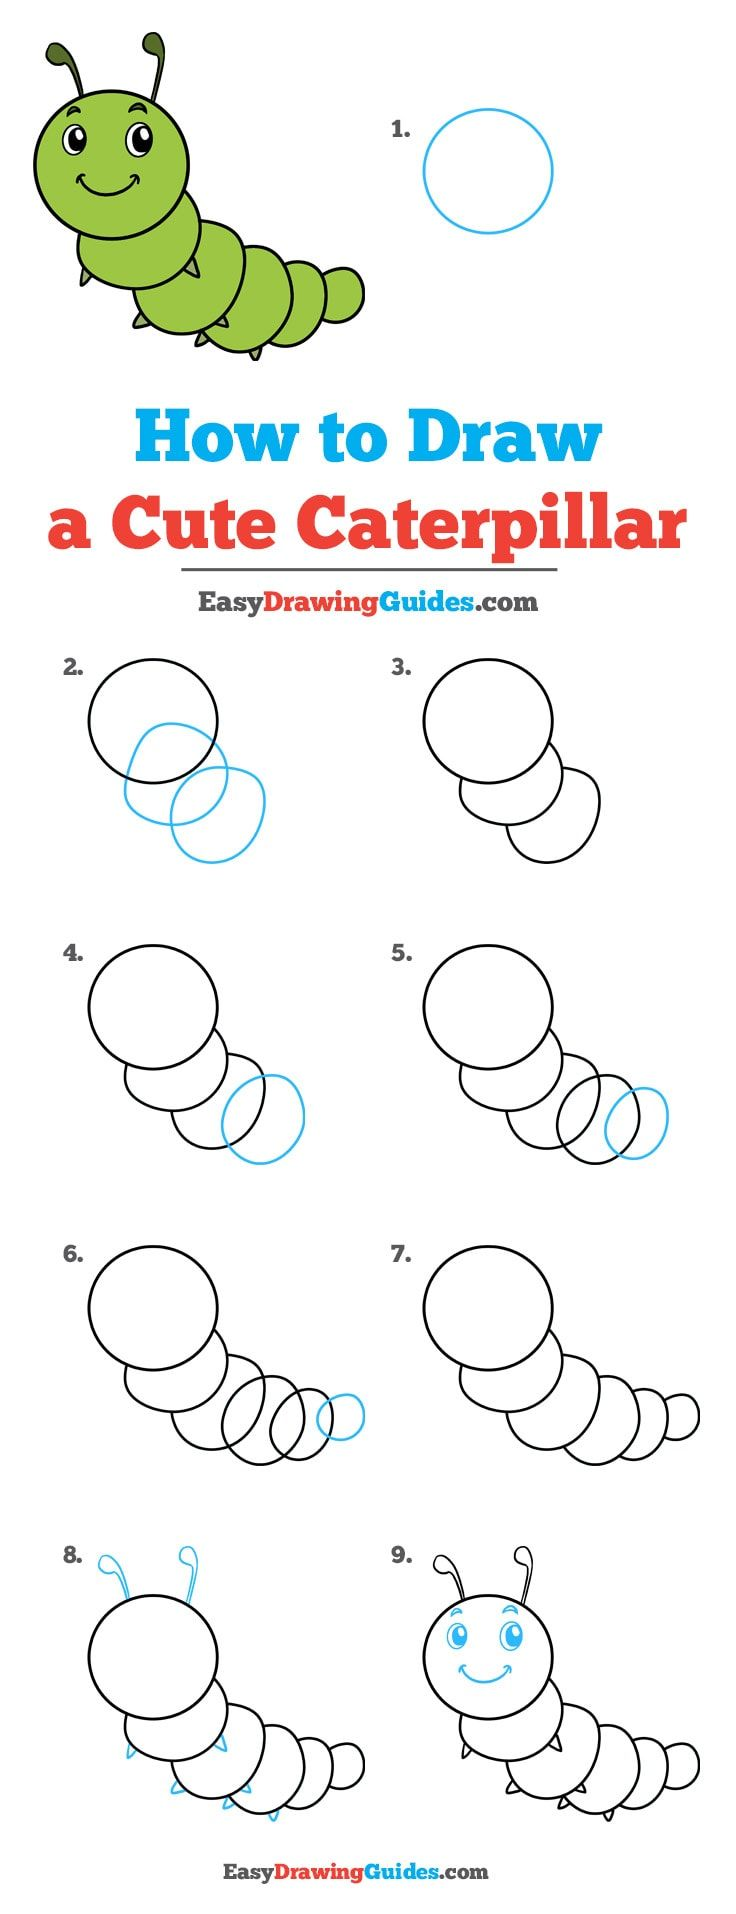 How to Draw a Cute Caterpillar | Easy drawings, Drawing ...